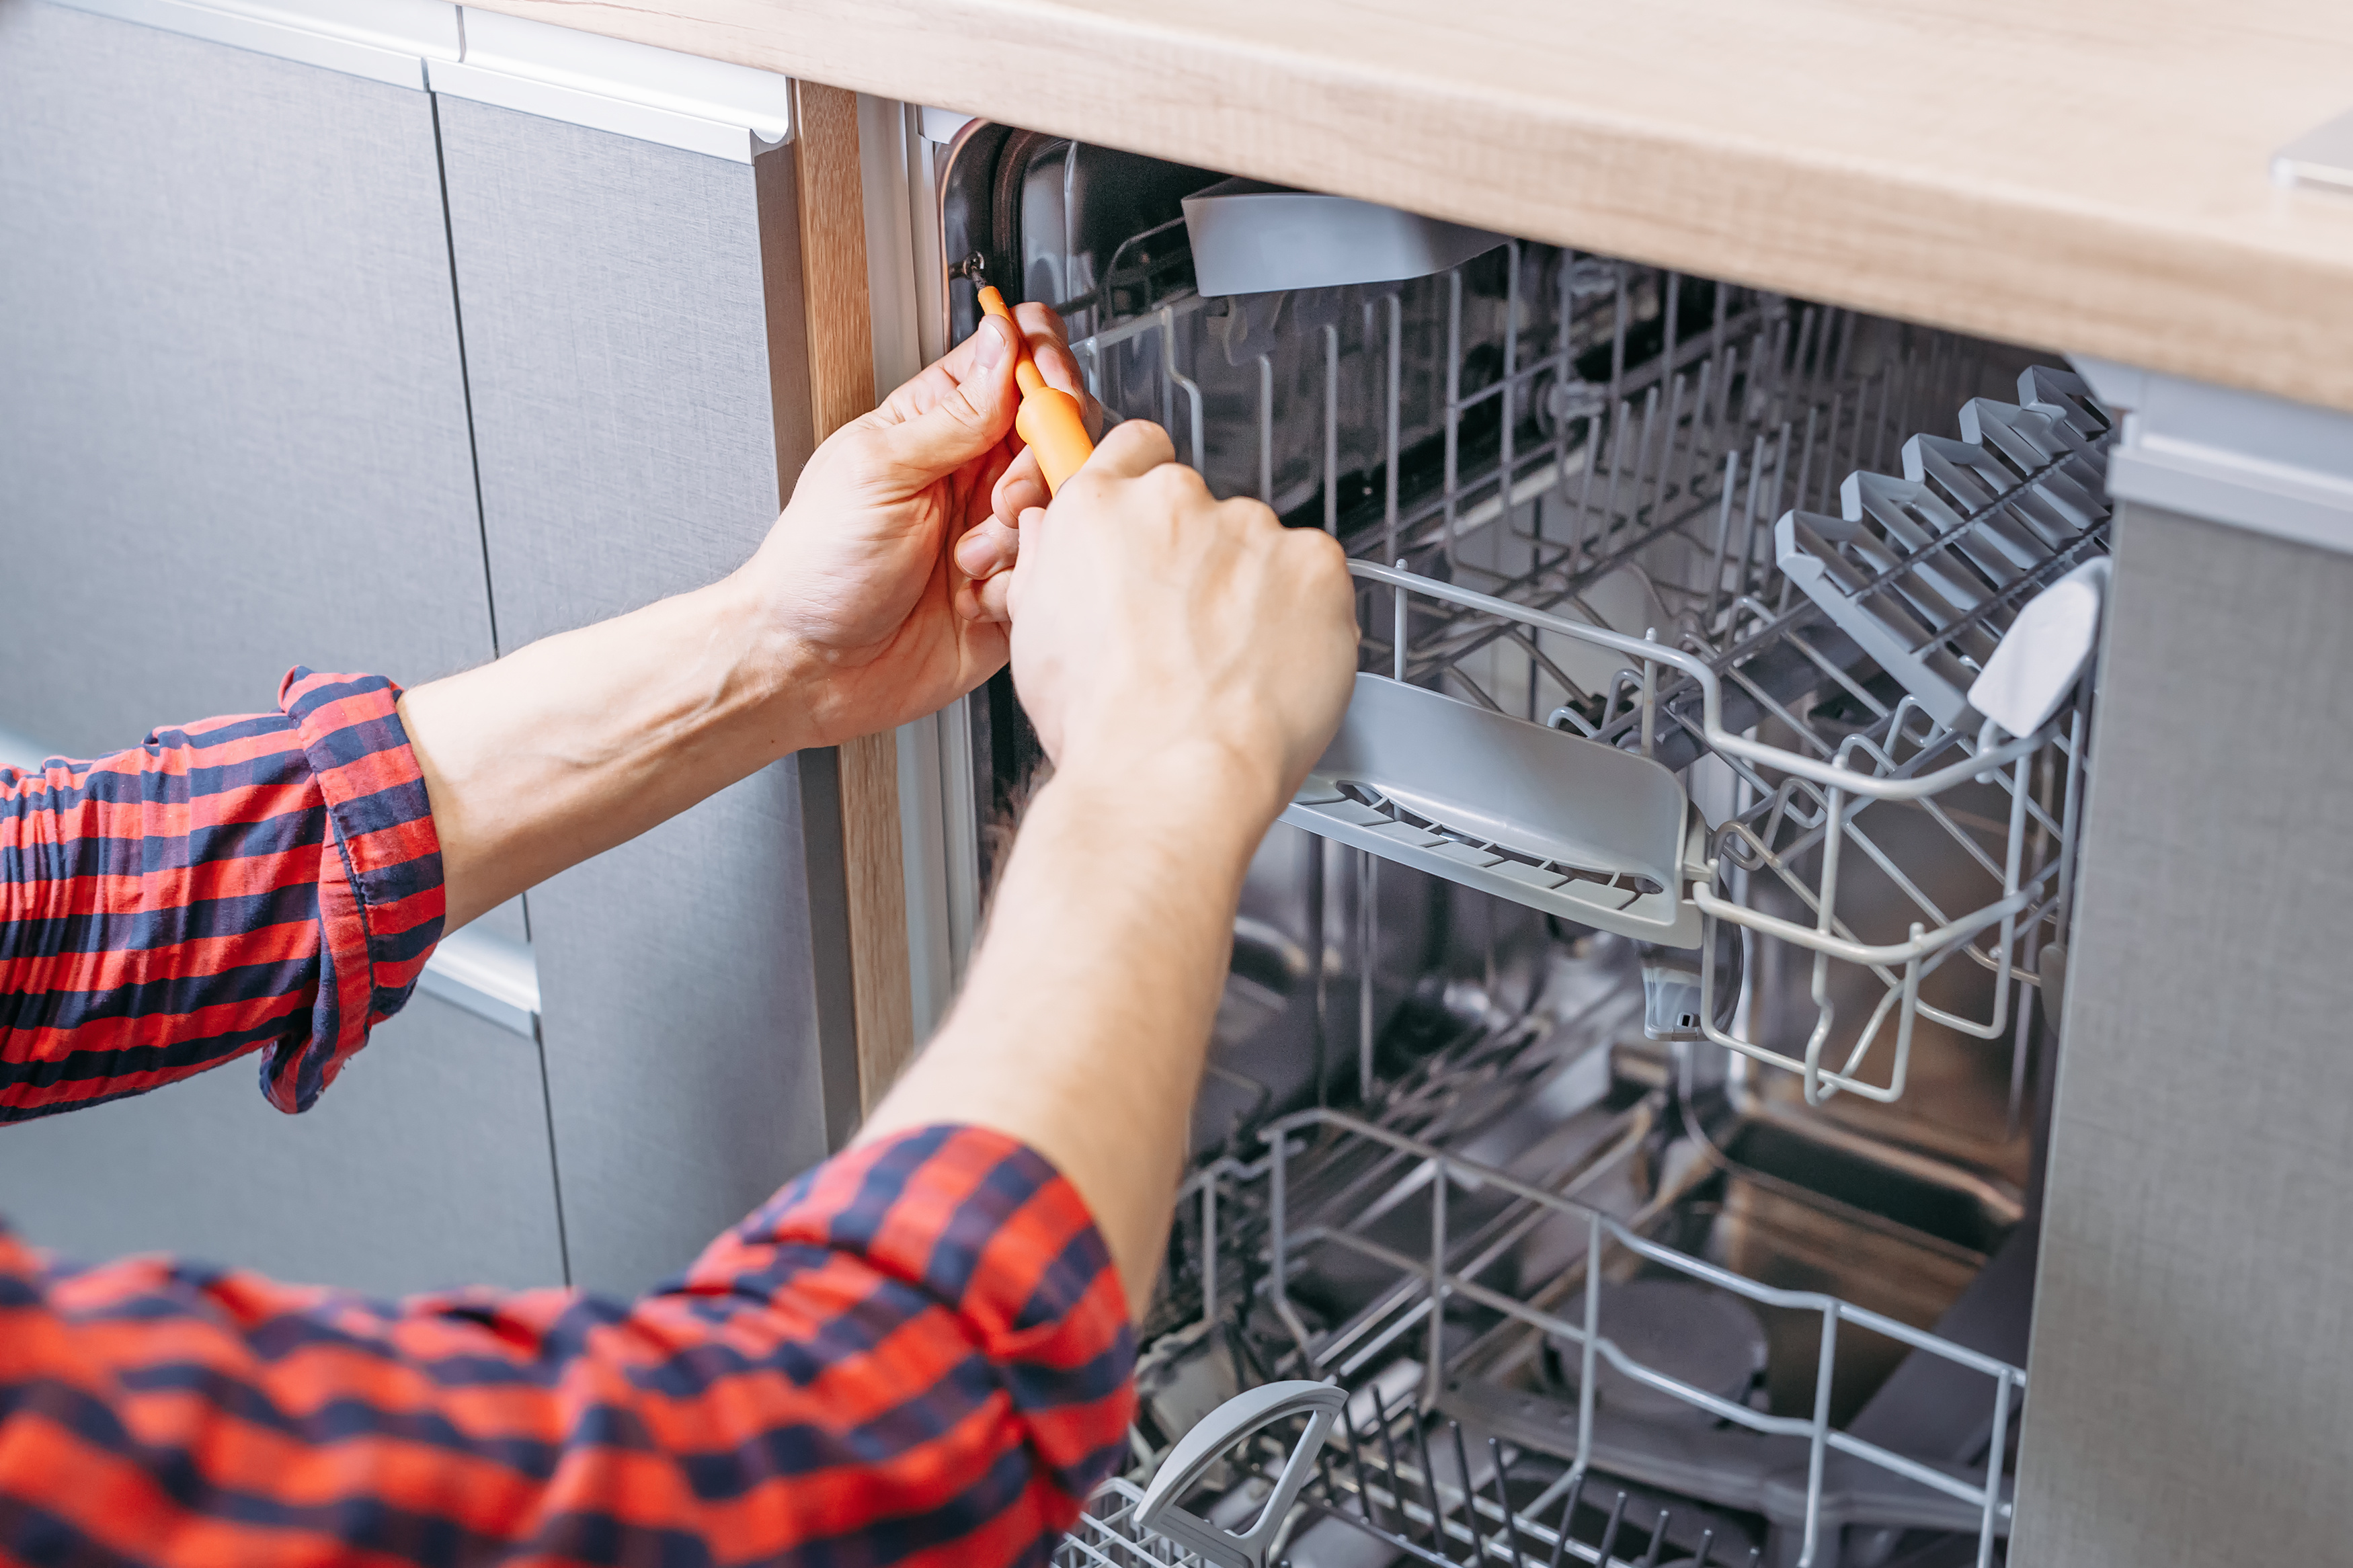 How to: install a dishwasher | Pittsburgh | Terry's Plumbing